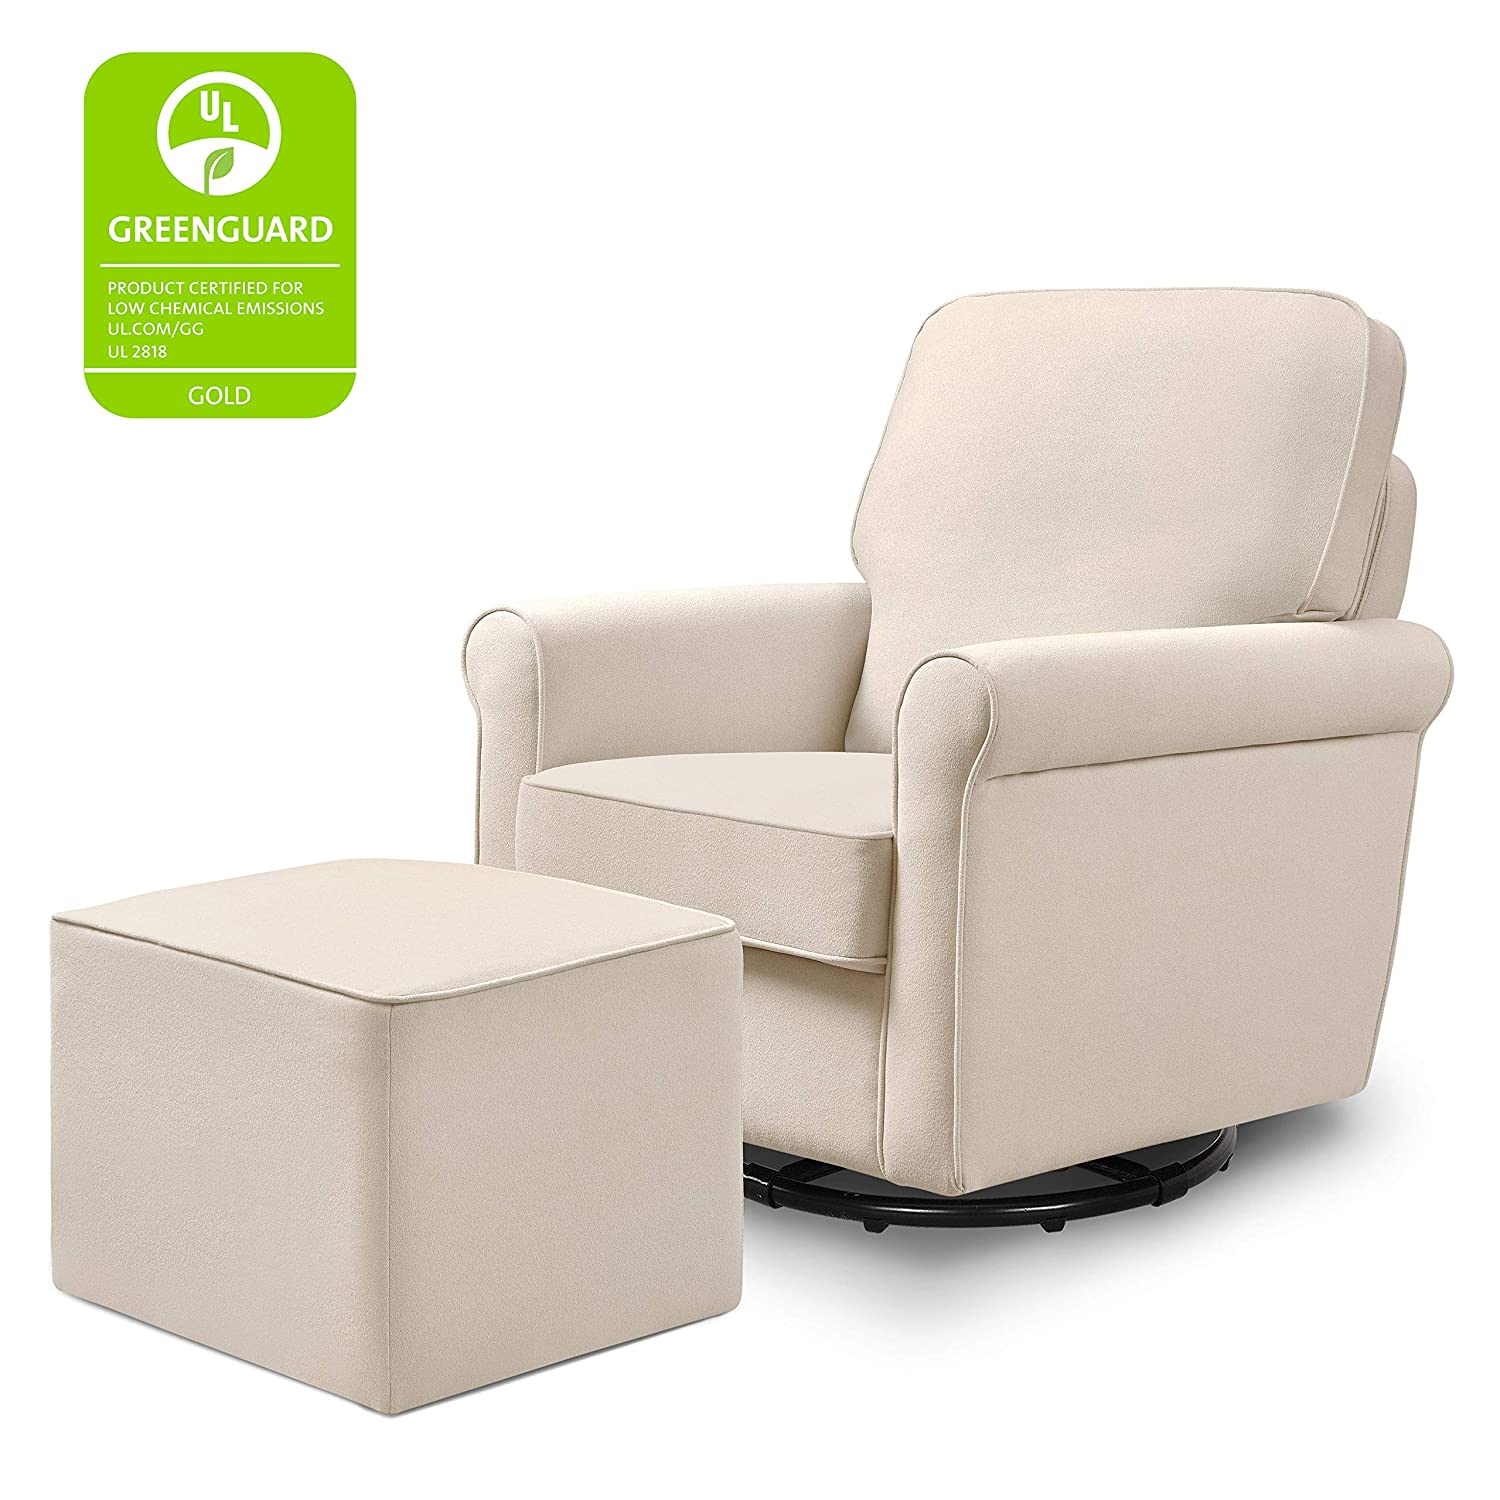 DaVinci Maya Upholstered Swivel Glider and Ottoman, Cream